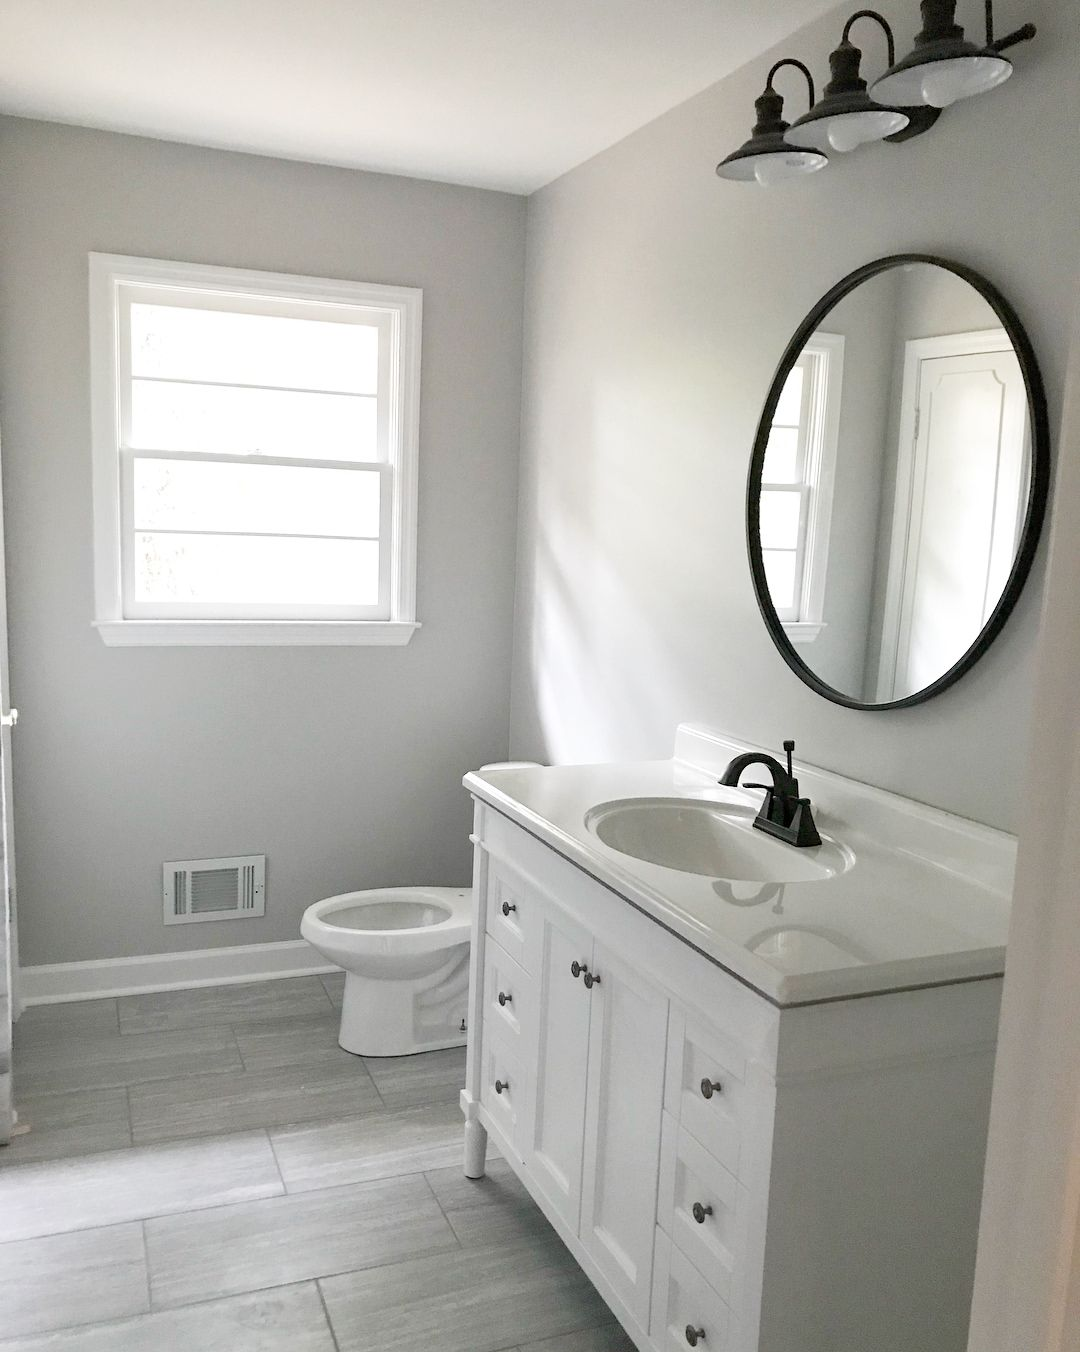 White And Gray Bathroom With Black Circle Mirror White Cabinets With Black Hardware Badkamer